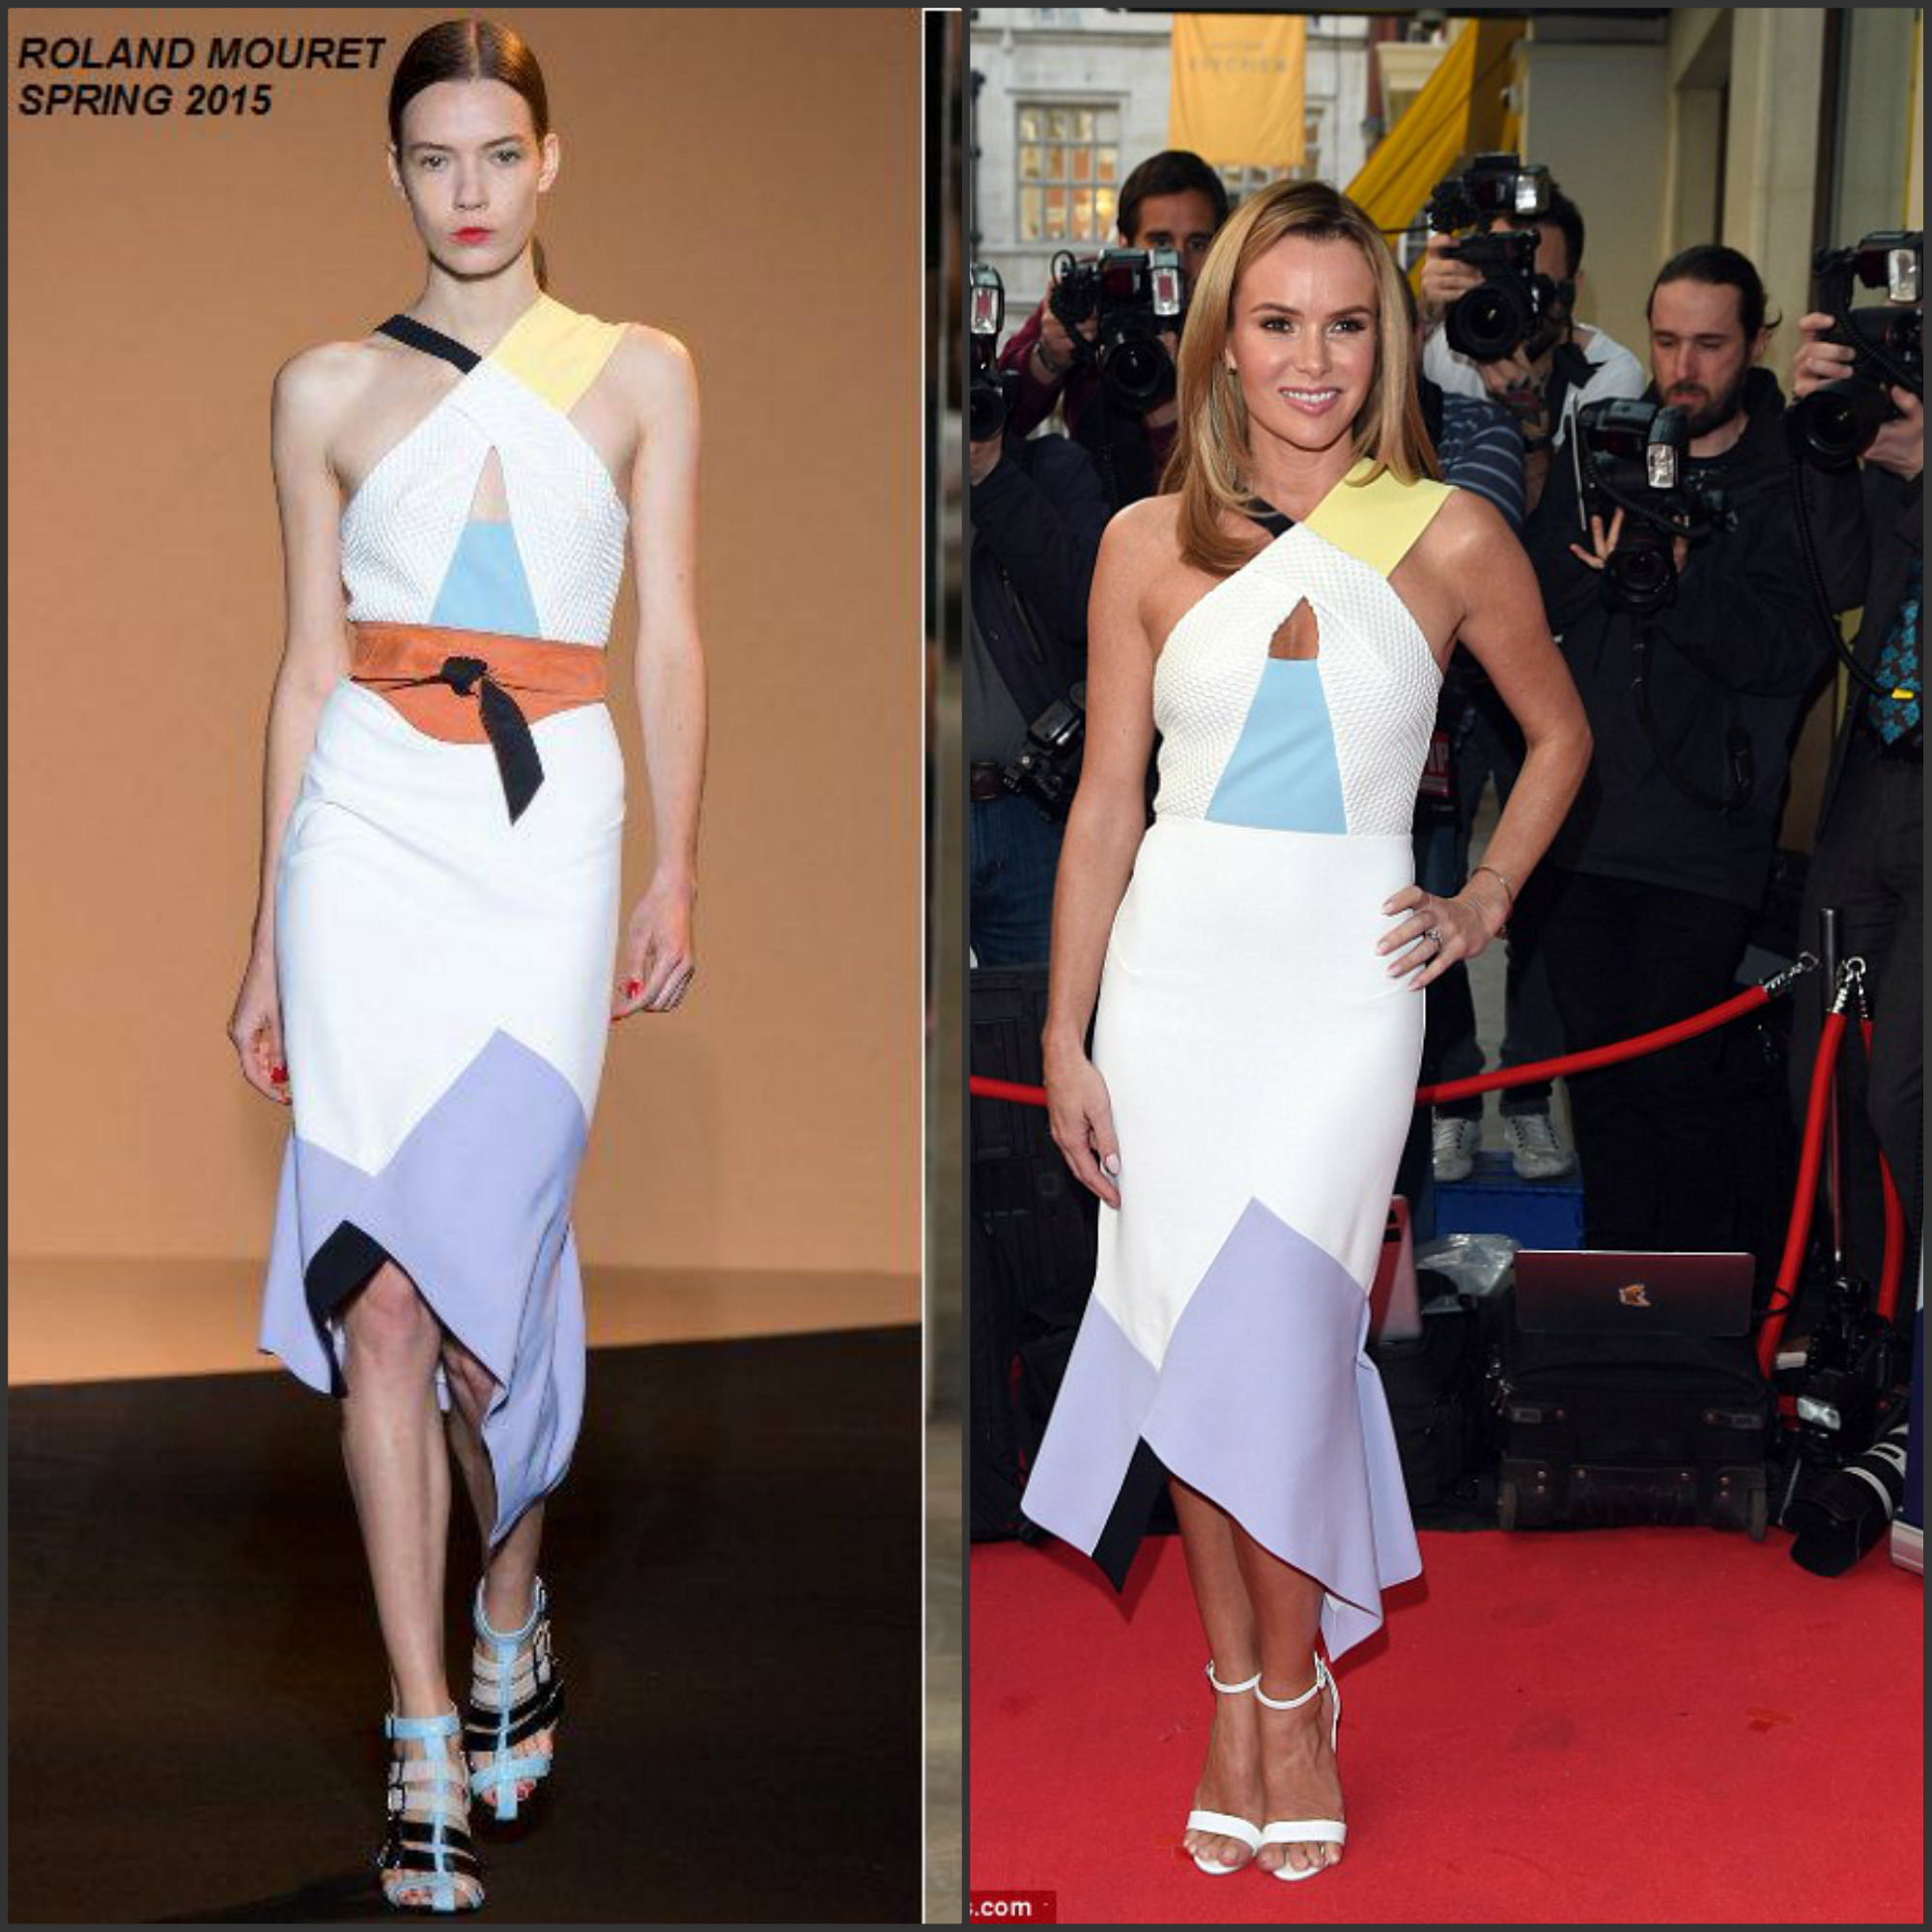 Amanda-Holden-in-Roland-Mouret- Britians-Got-Talent-London-Audition